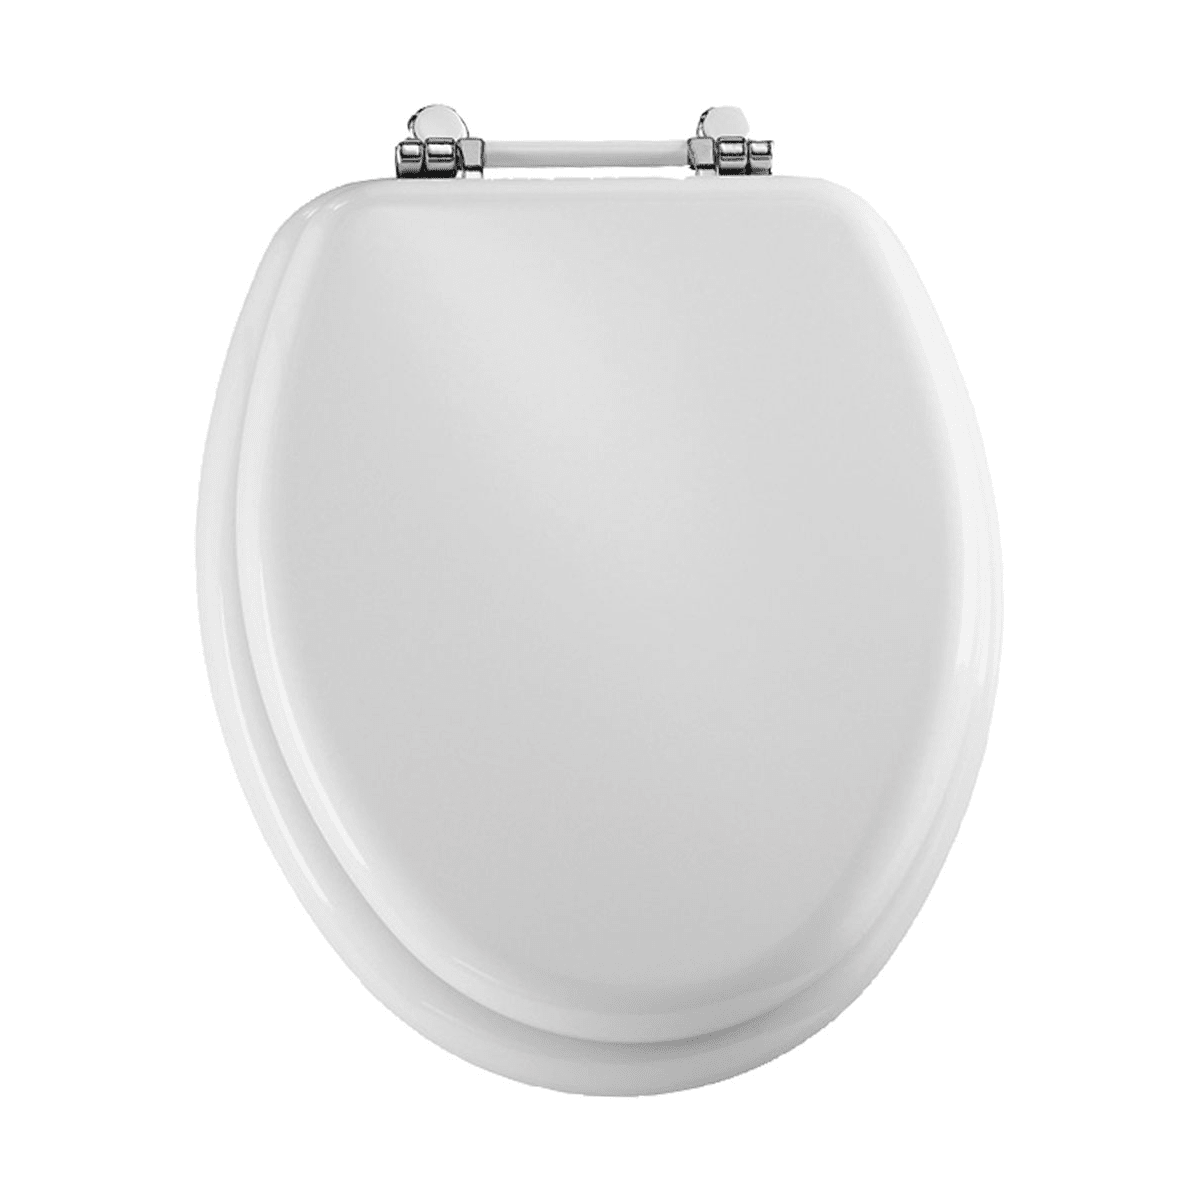 Superb Bemis 1960Pch 000 White Elongated Toilet Seat Closed Front Andrewgaddart Wooden Chair Designs For Living Room Andrewgaddartcom